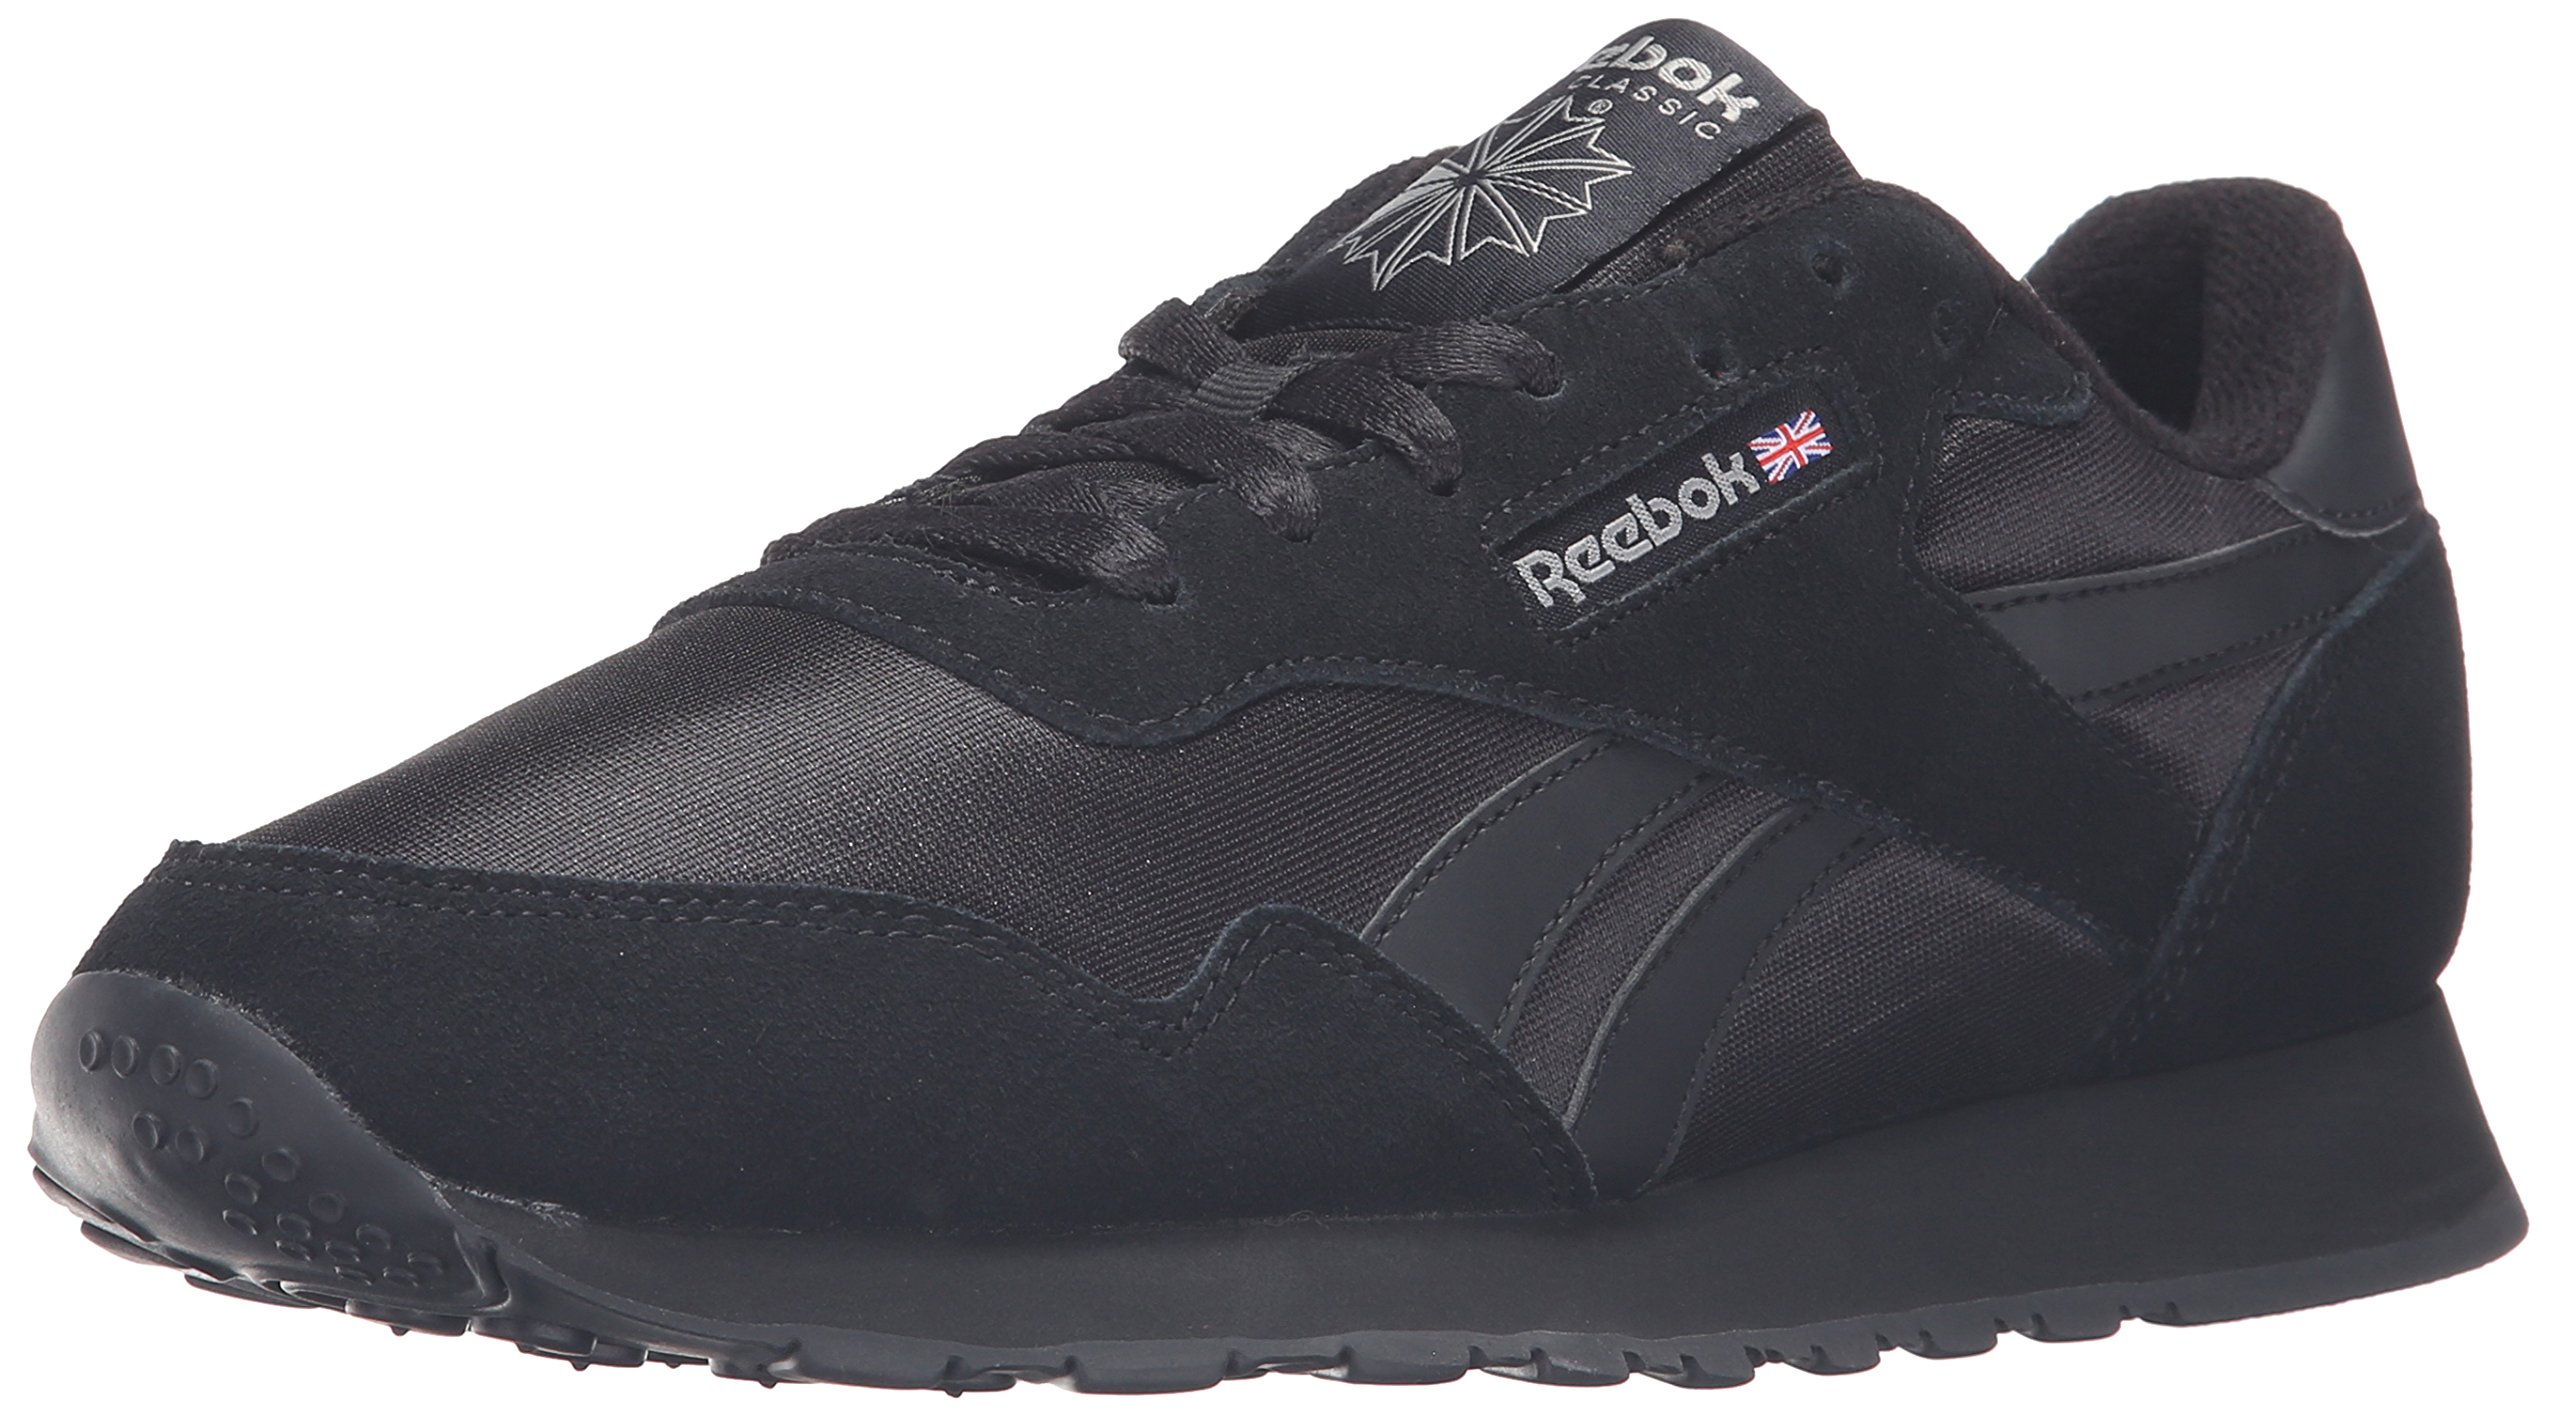 Reebok Men's Royal Nylon Classic Fashion Sneaker, Black/Black/Carbon, 10.5 M US